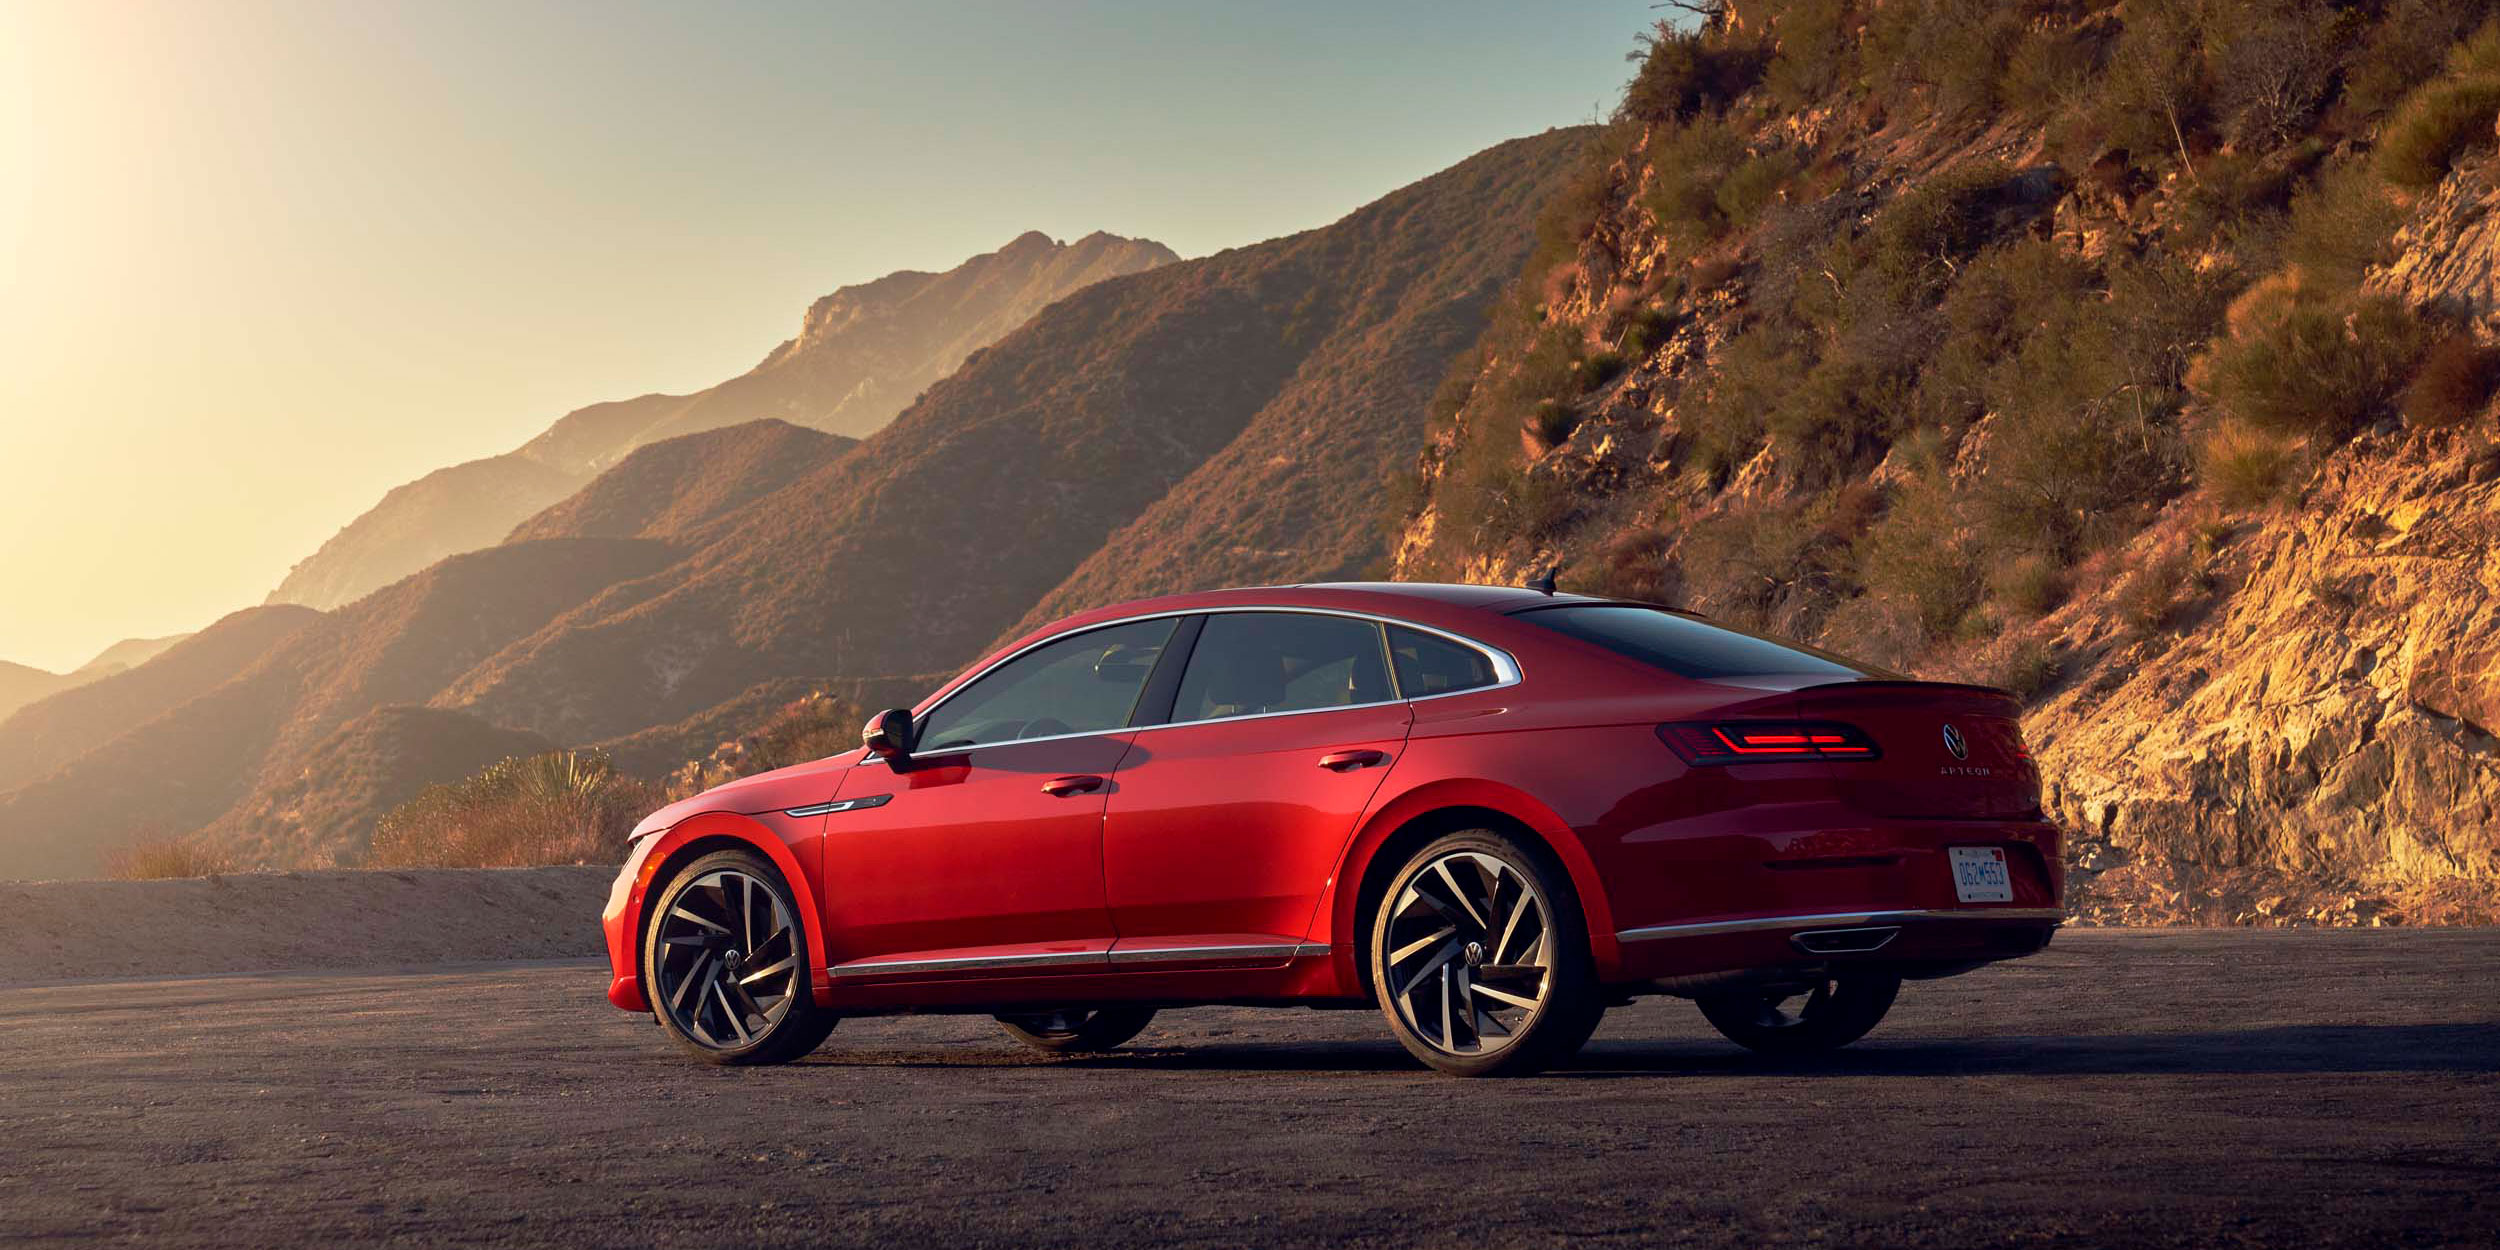 2021 Arteon: a brand halo evolved and sharpened